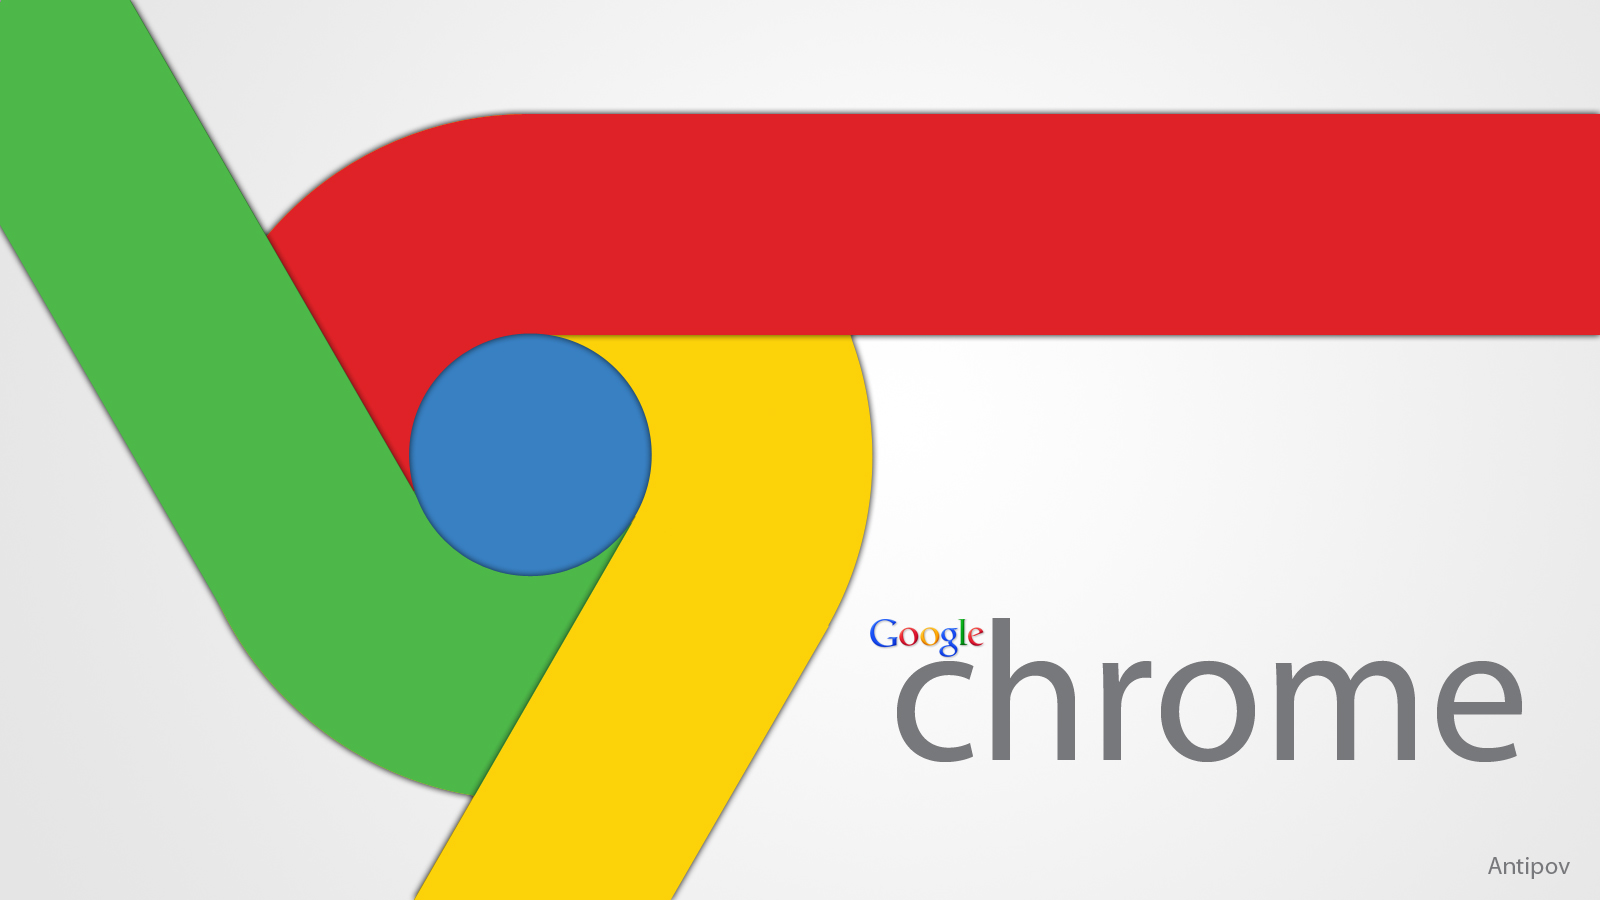 ... google-chrome-wallpaper-hd ...